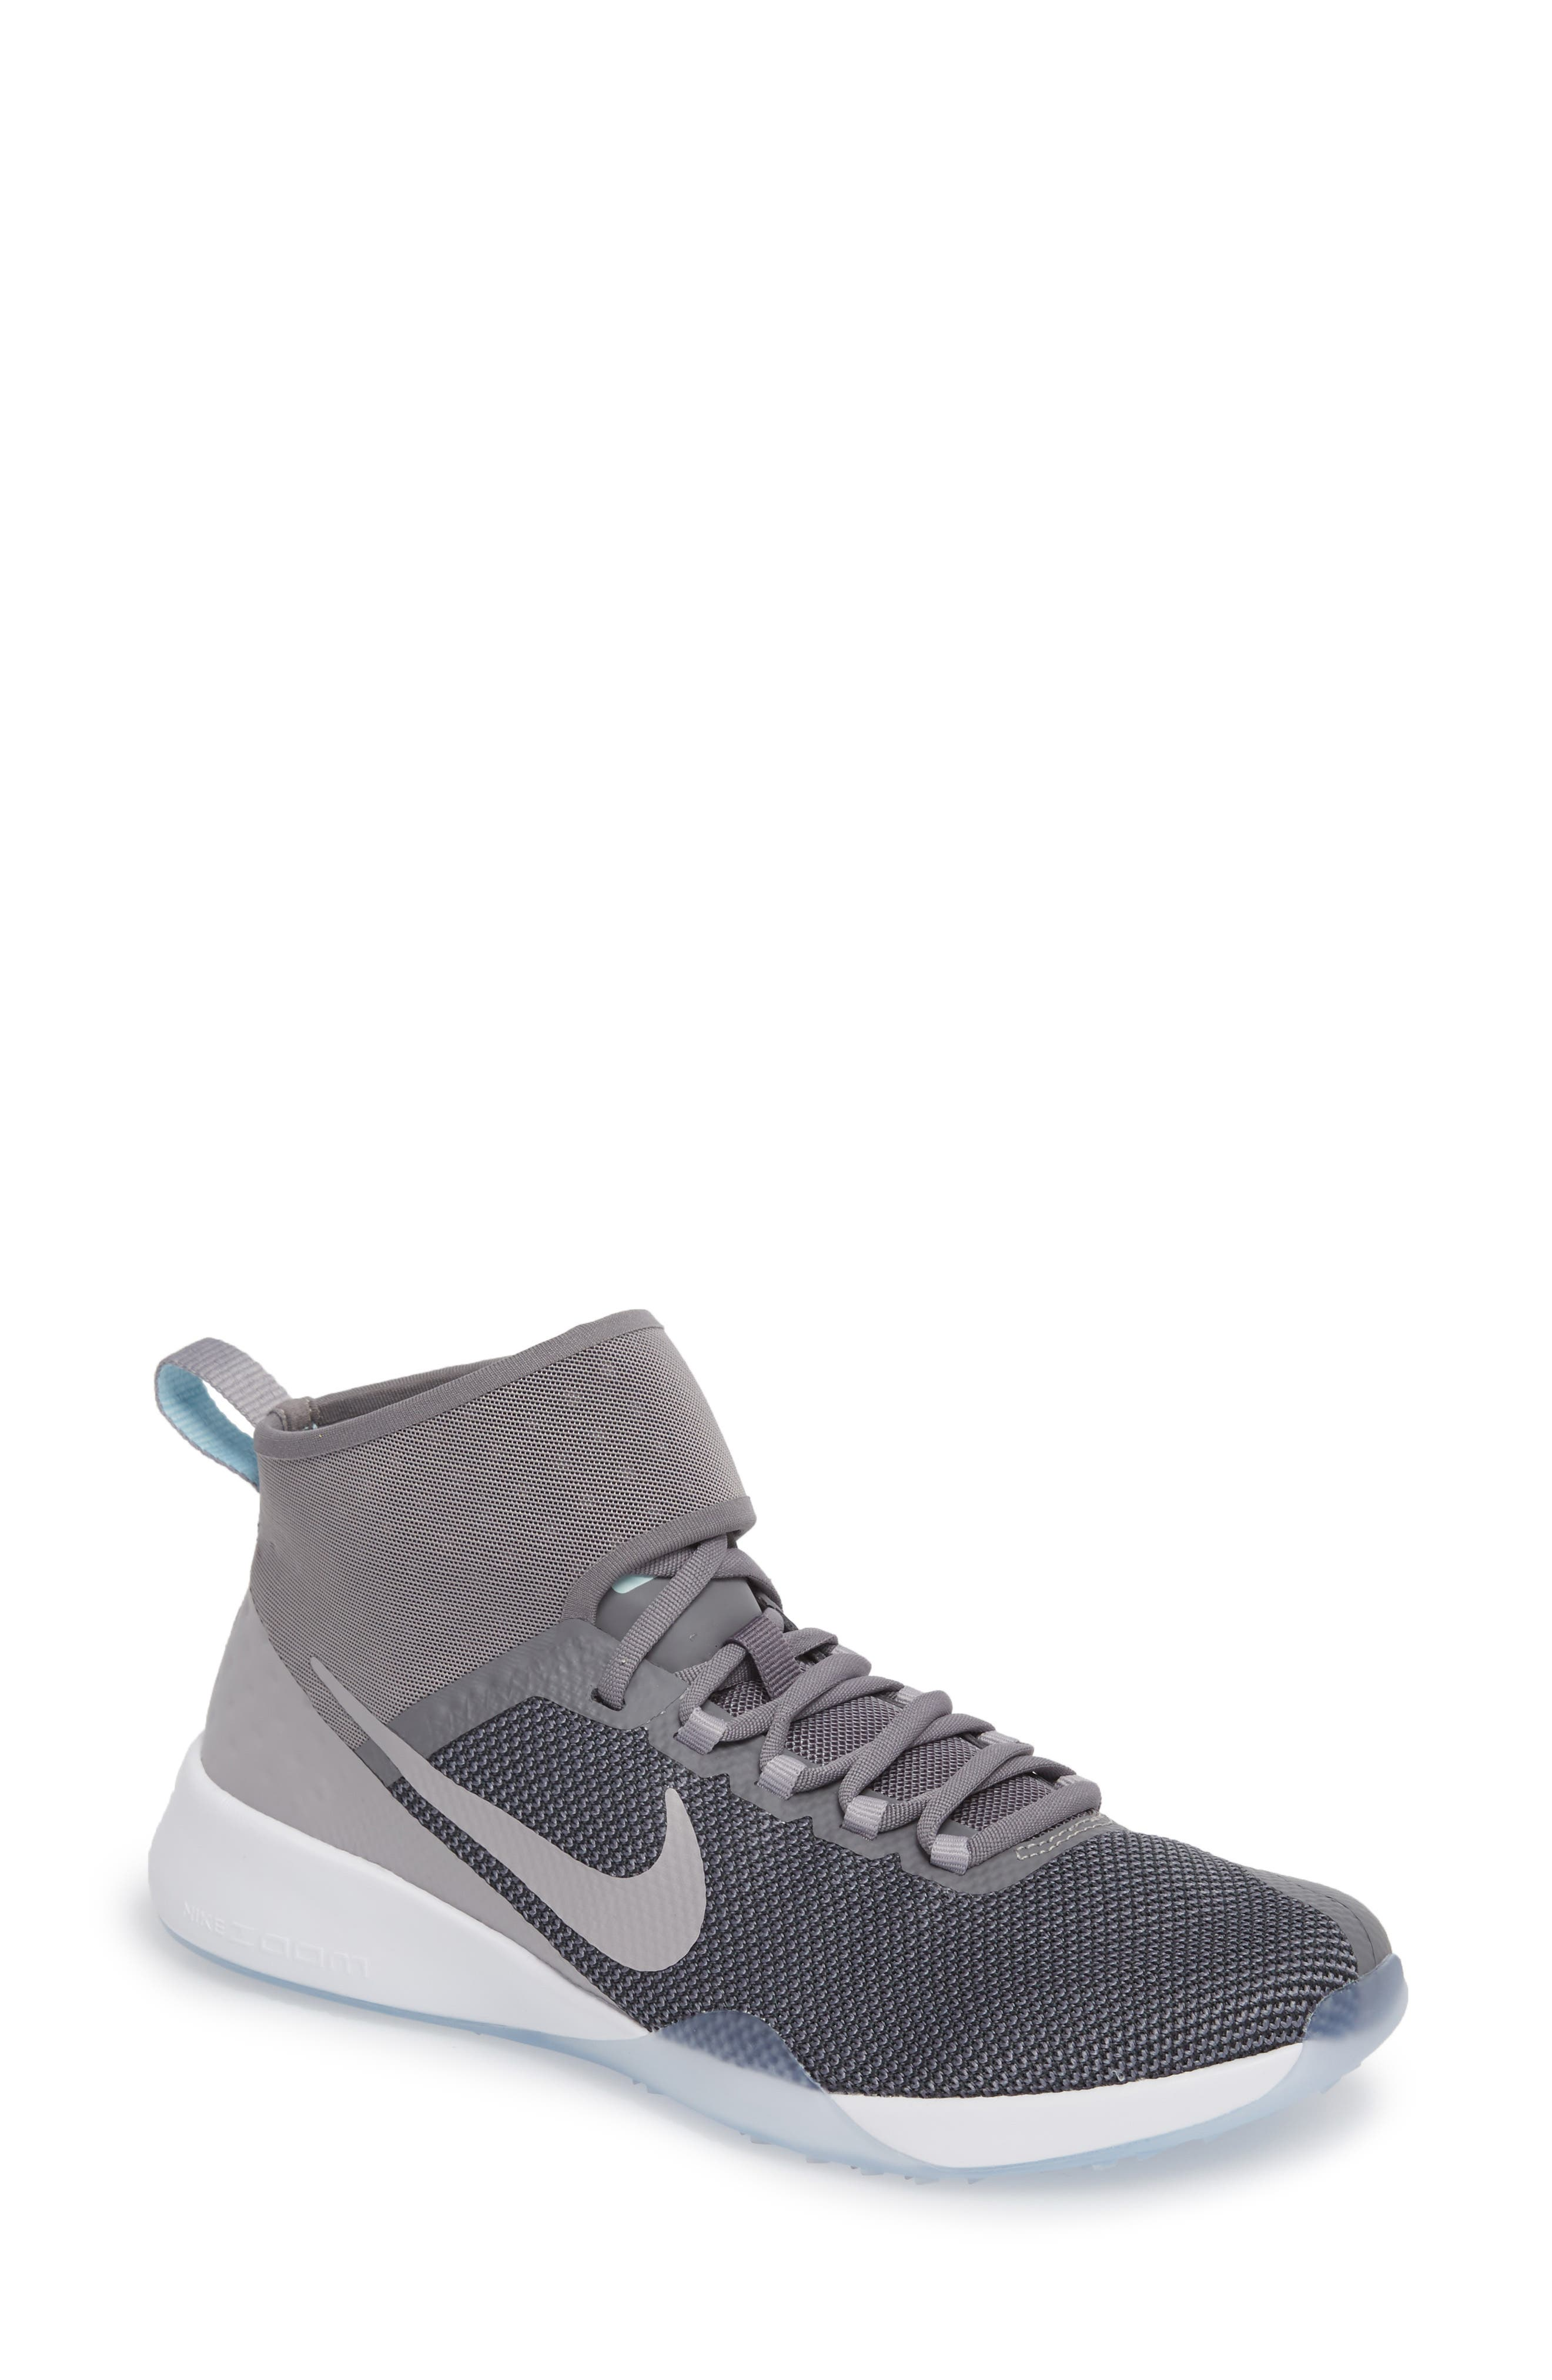 NikeLab Air Zoom Strong 2 Training Shoe,                         Main,                         color, 025